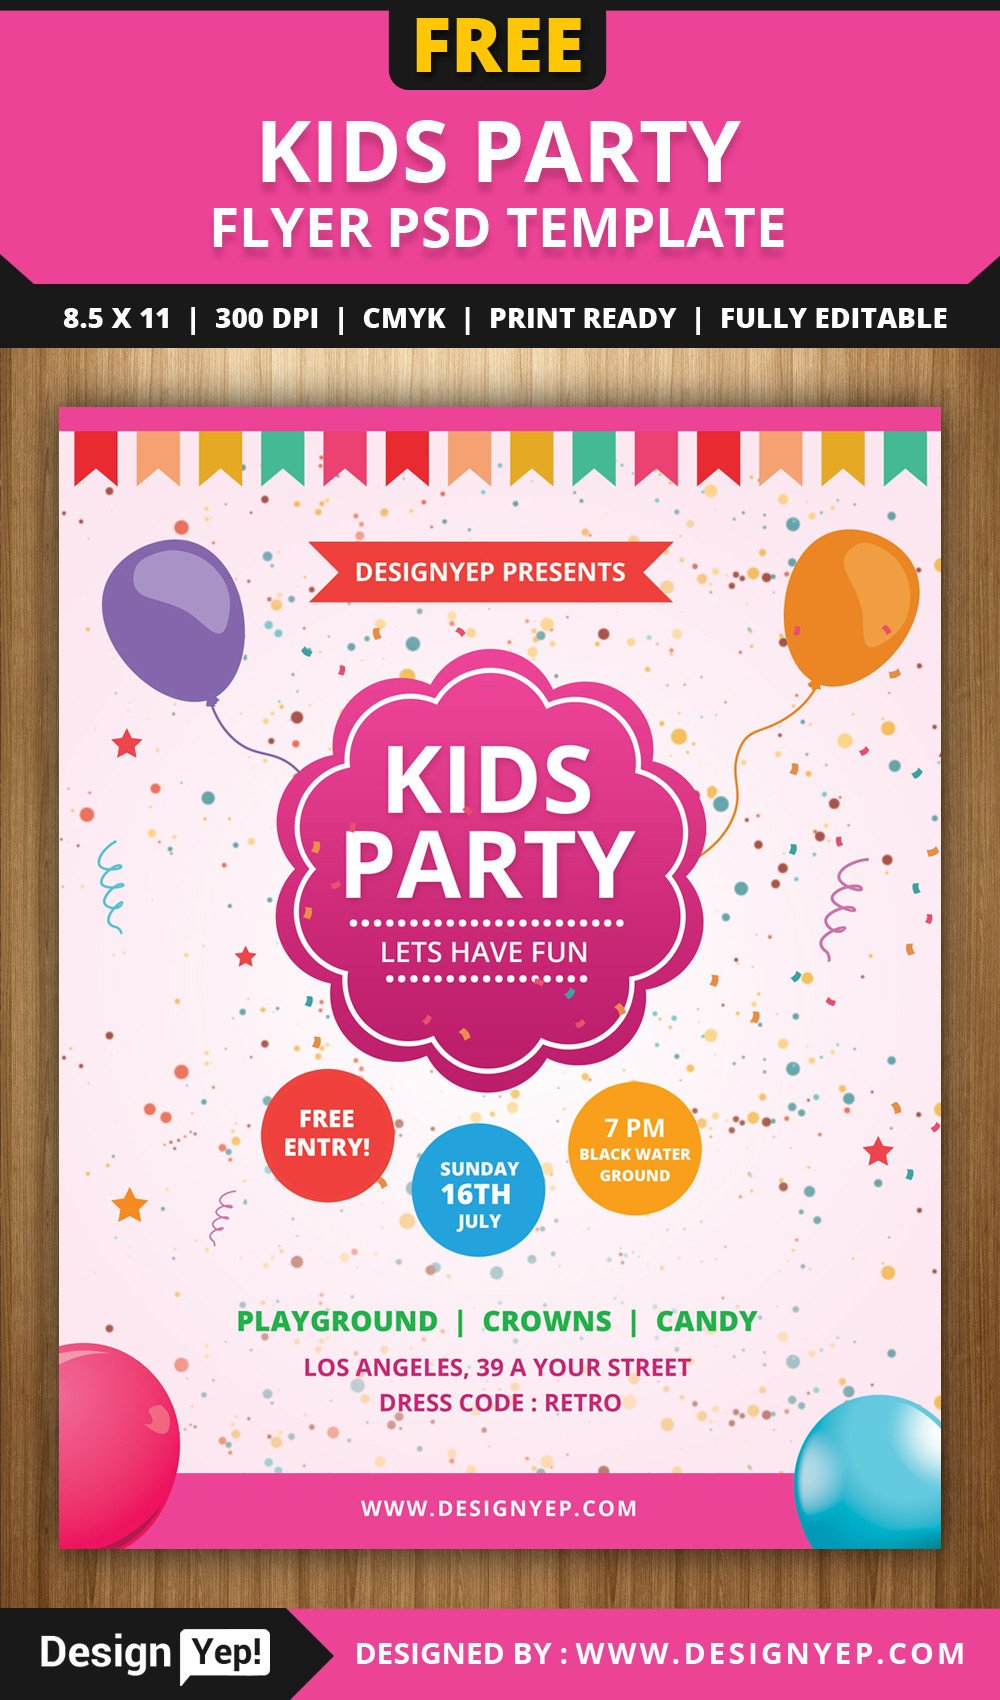 Free Party Flyer Templates Free Kids Party Flyer Psd Template Designyep